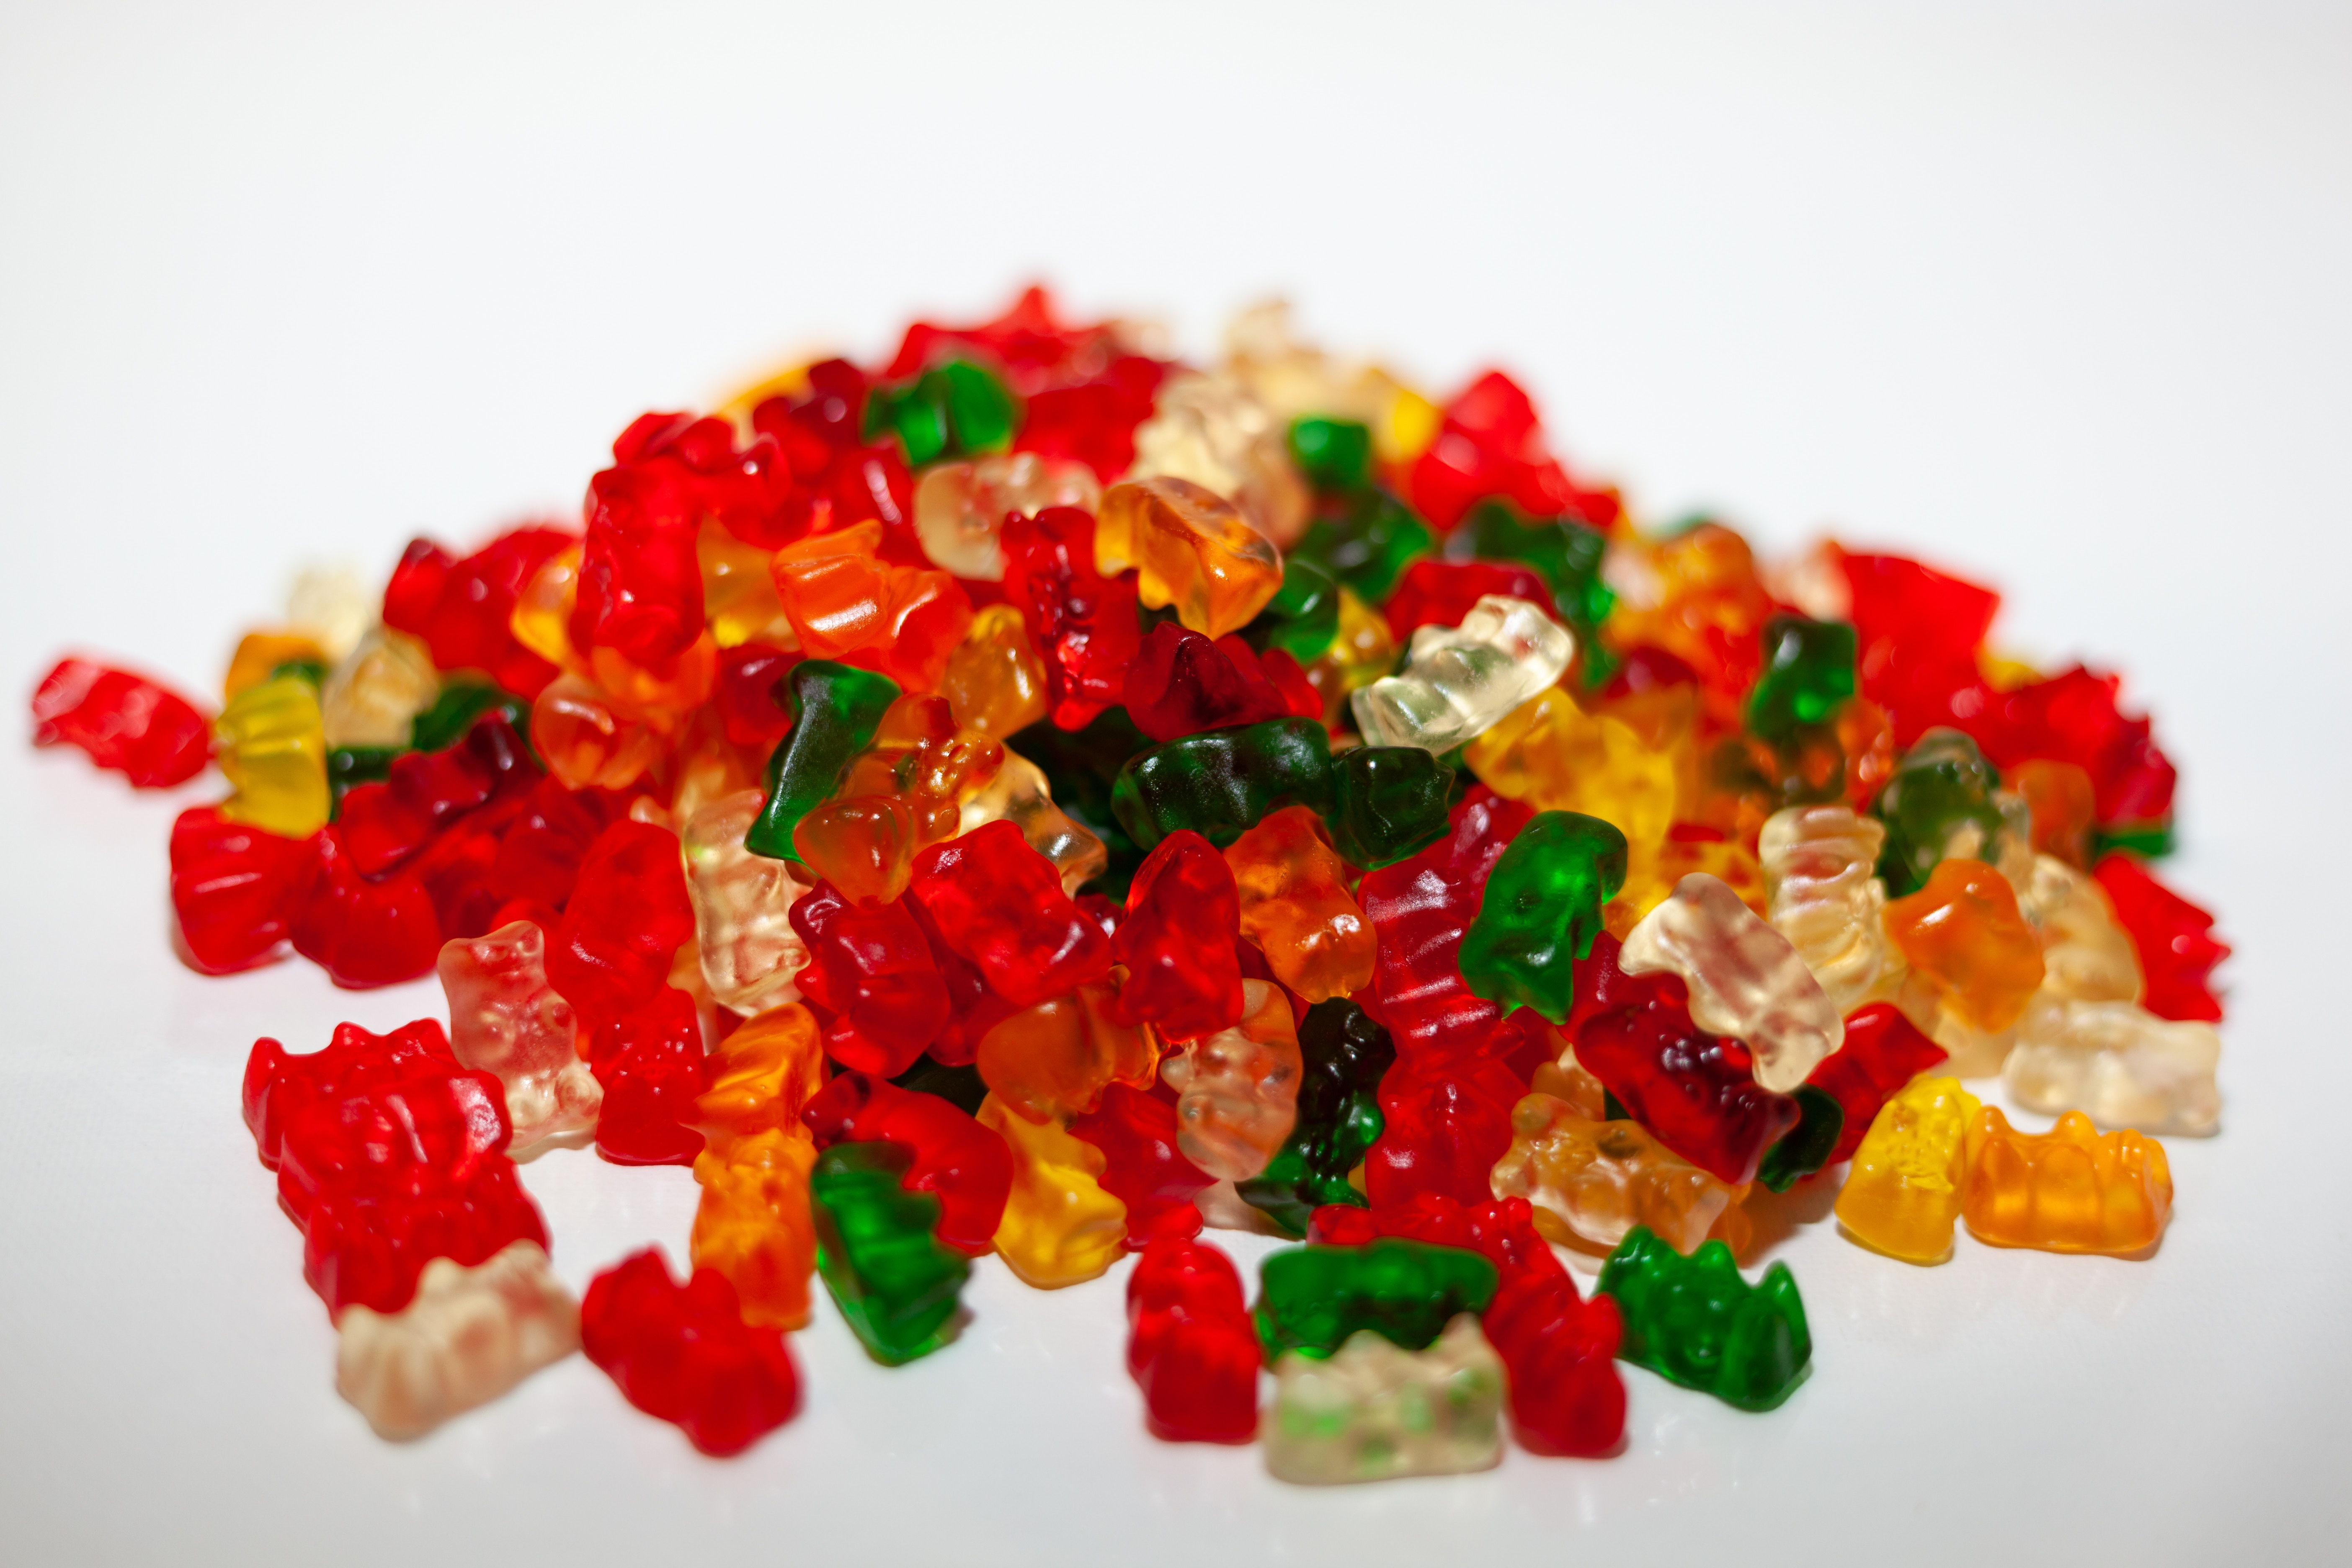 A huge pile of gummy bears in a rainbow of colors.